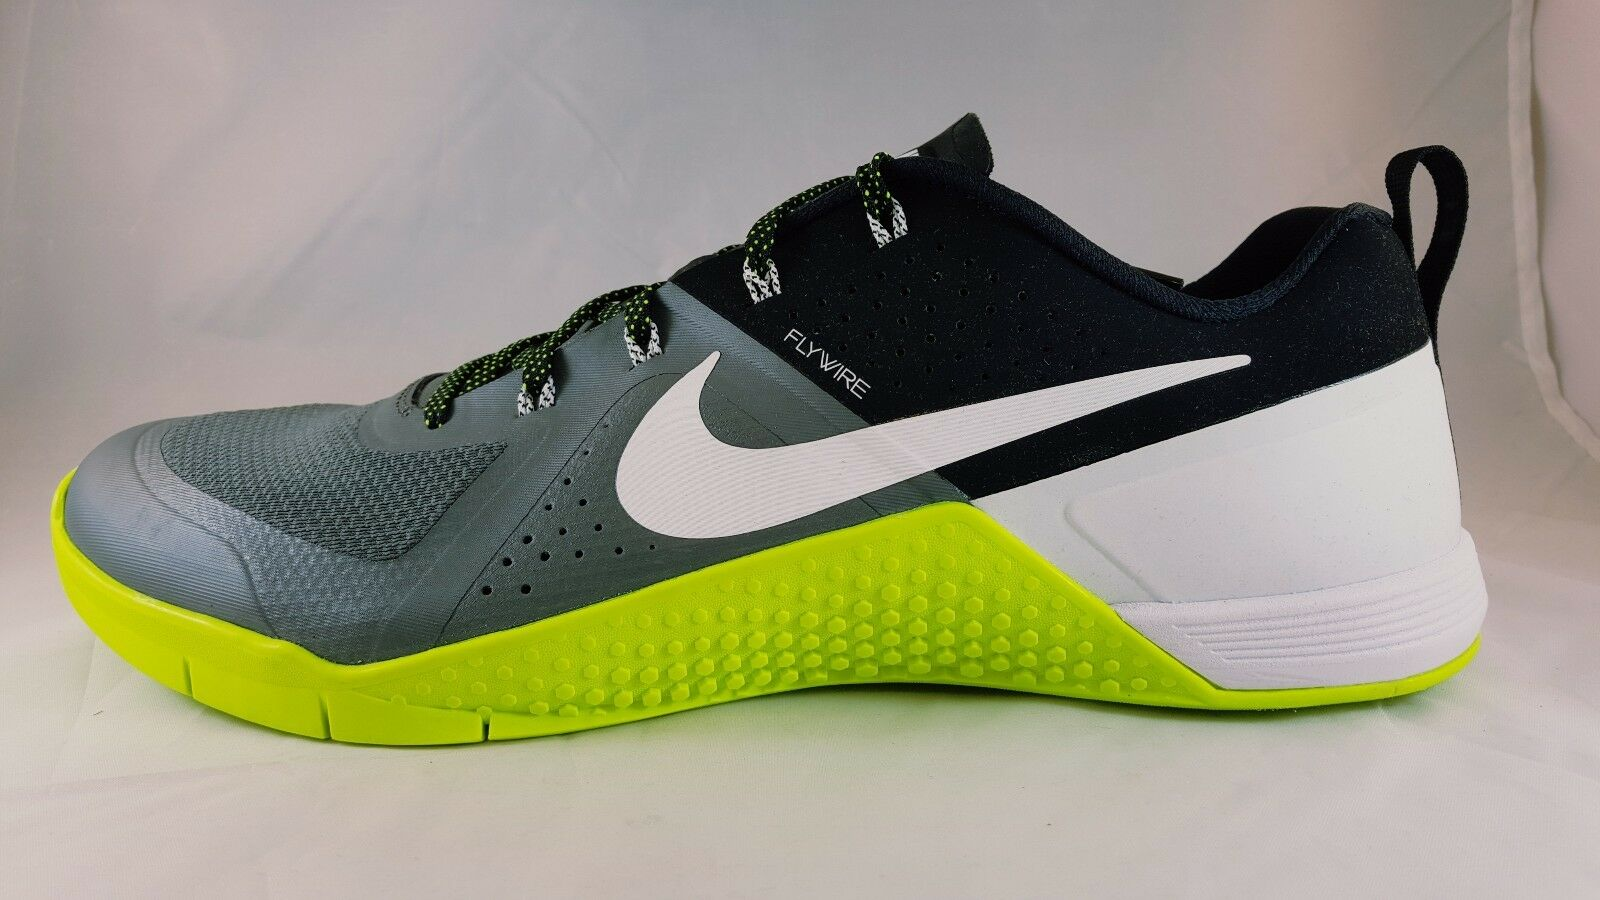 Nike Nike Nike metcon 1  - cross - training schuh 704688 007  15. a42e25